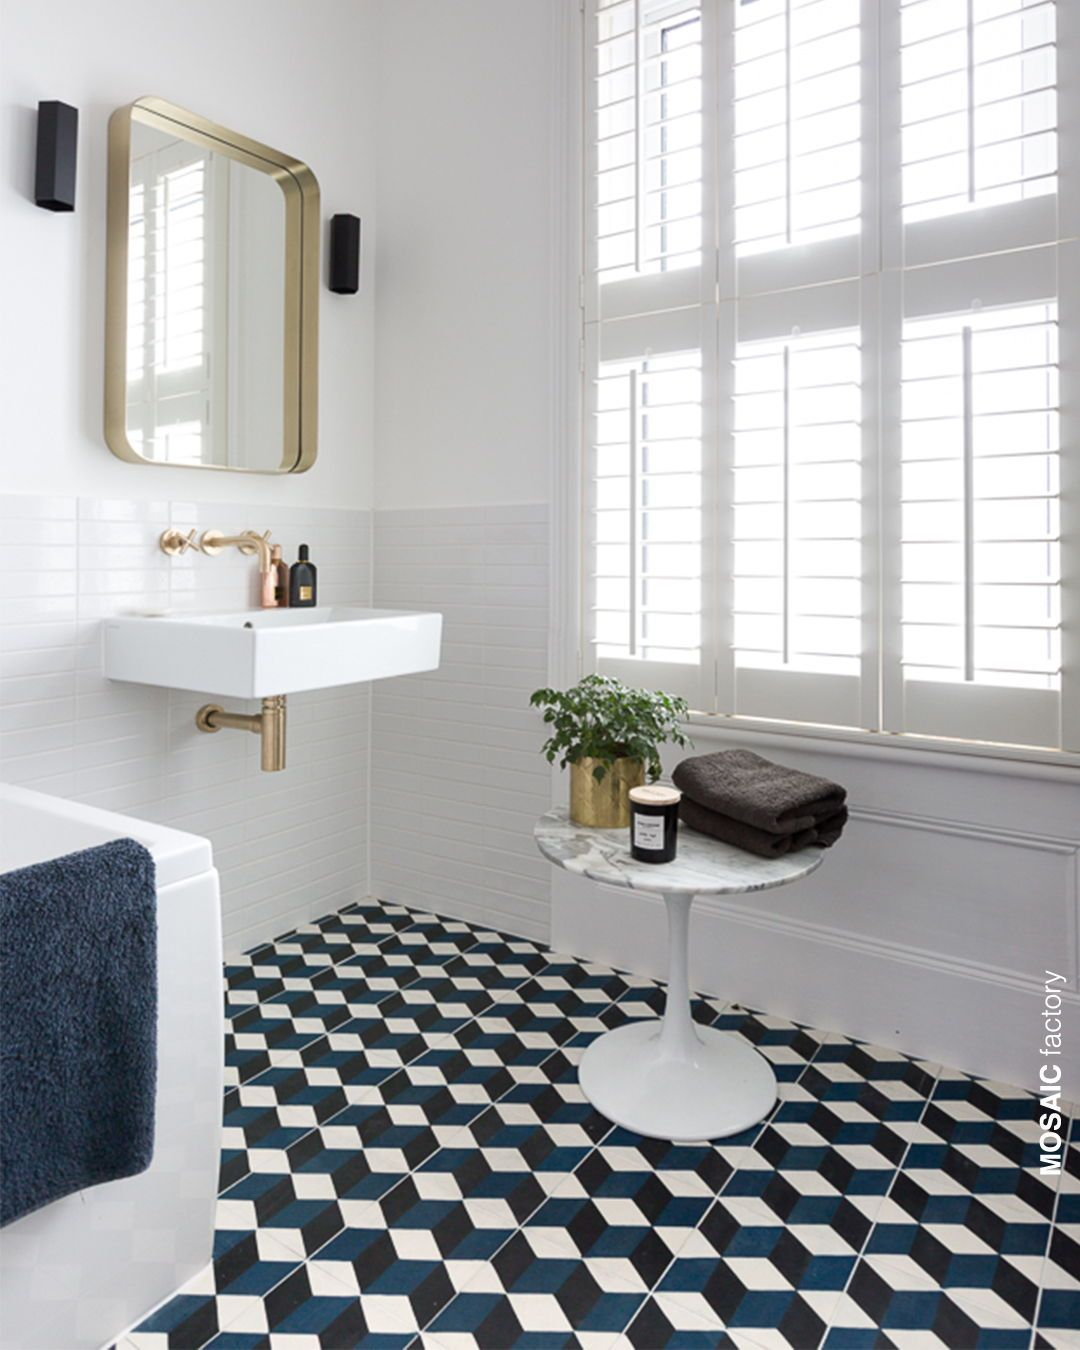 All White Bathroom With Contrasting Patterned Floor Tiles In Blue White And Black The Geometric Cubic Ti Patterned Floor Tiles Blue Tile Floor White Bathroom